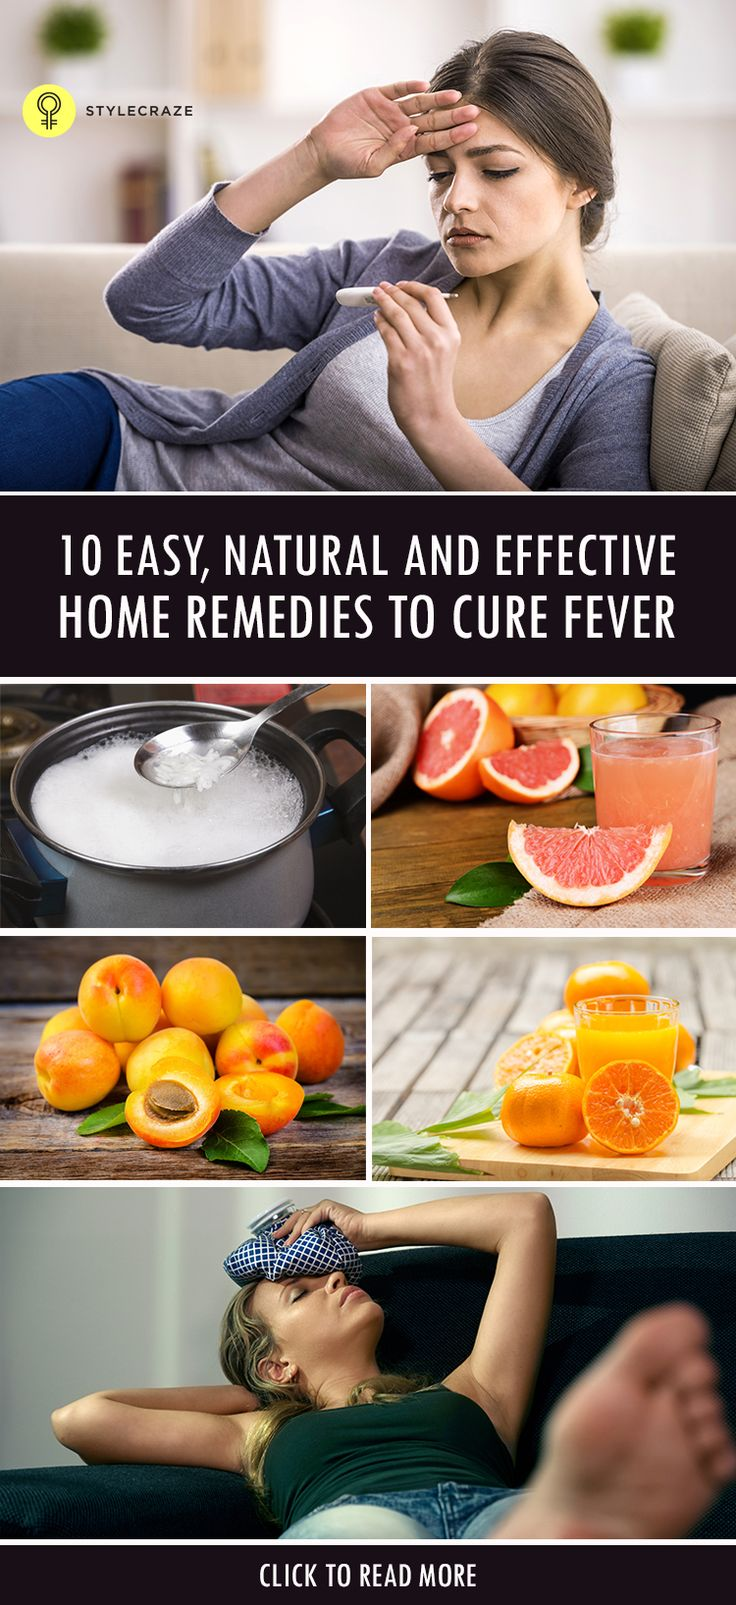 Fever is your body's natural way of fighting an infection such as flu. Fever within 102 degrees is usually not a concern. However, if it rises, you better not ignore it.